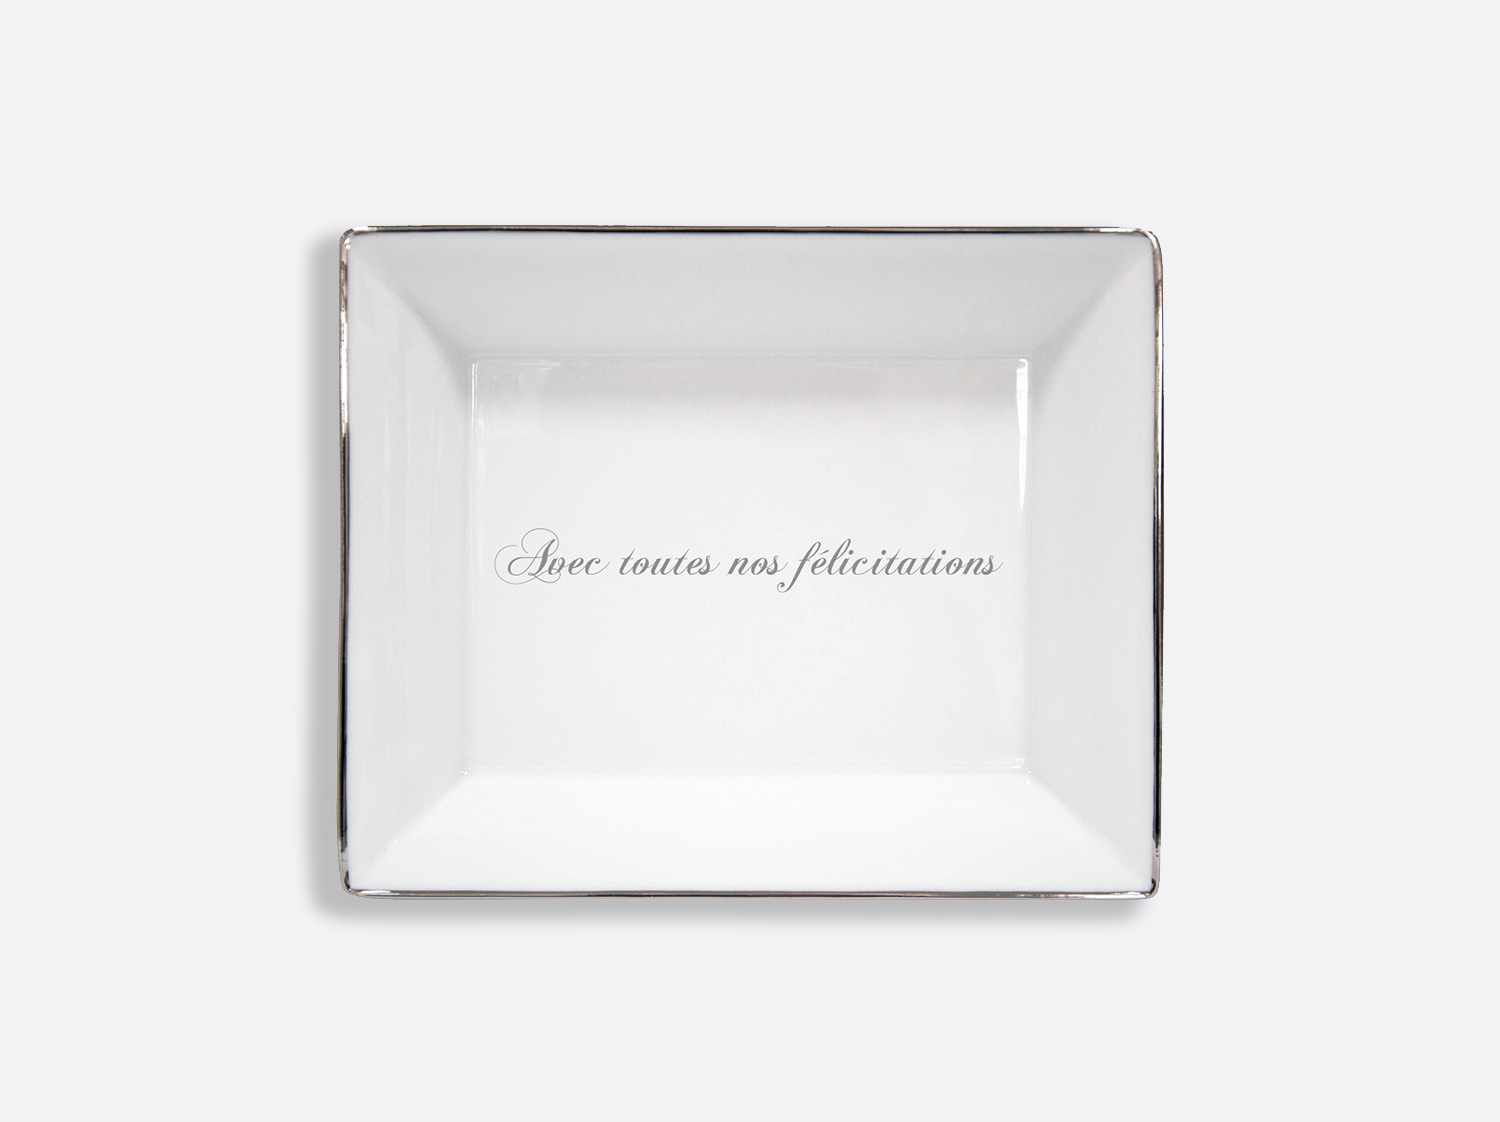 China Valet tray 20 x 16 cm of the collection Cristal - Personnalisation | Bernardaud